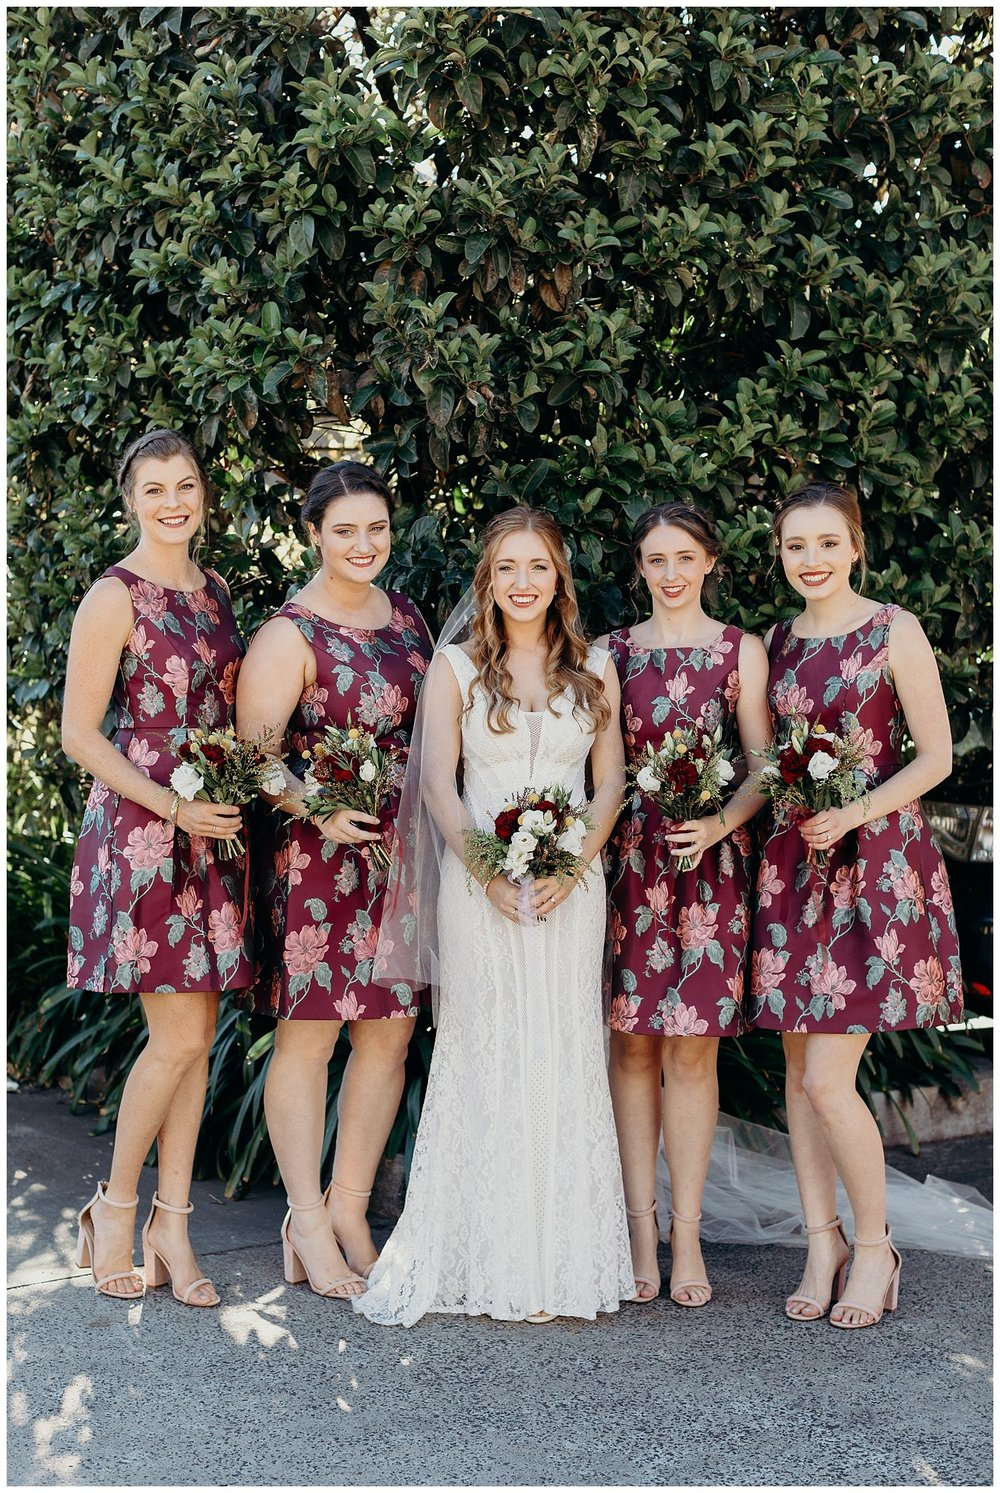 Bowral Southern Highlands Autumn Wedding - Bride and bridesmaids in floral maroon dress